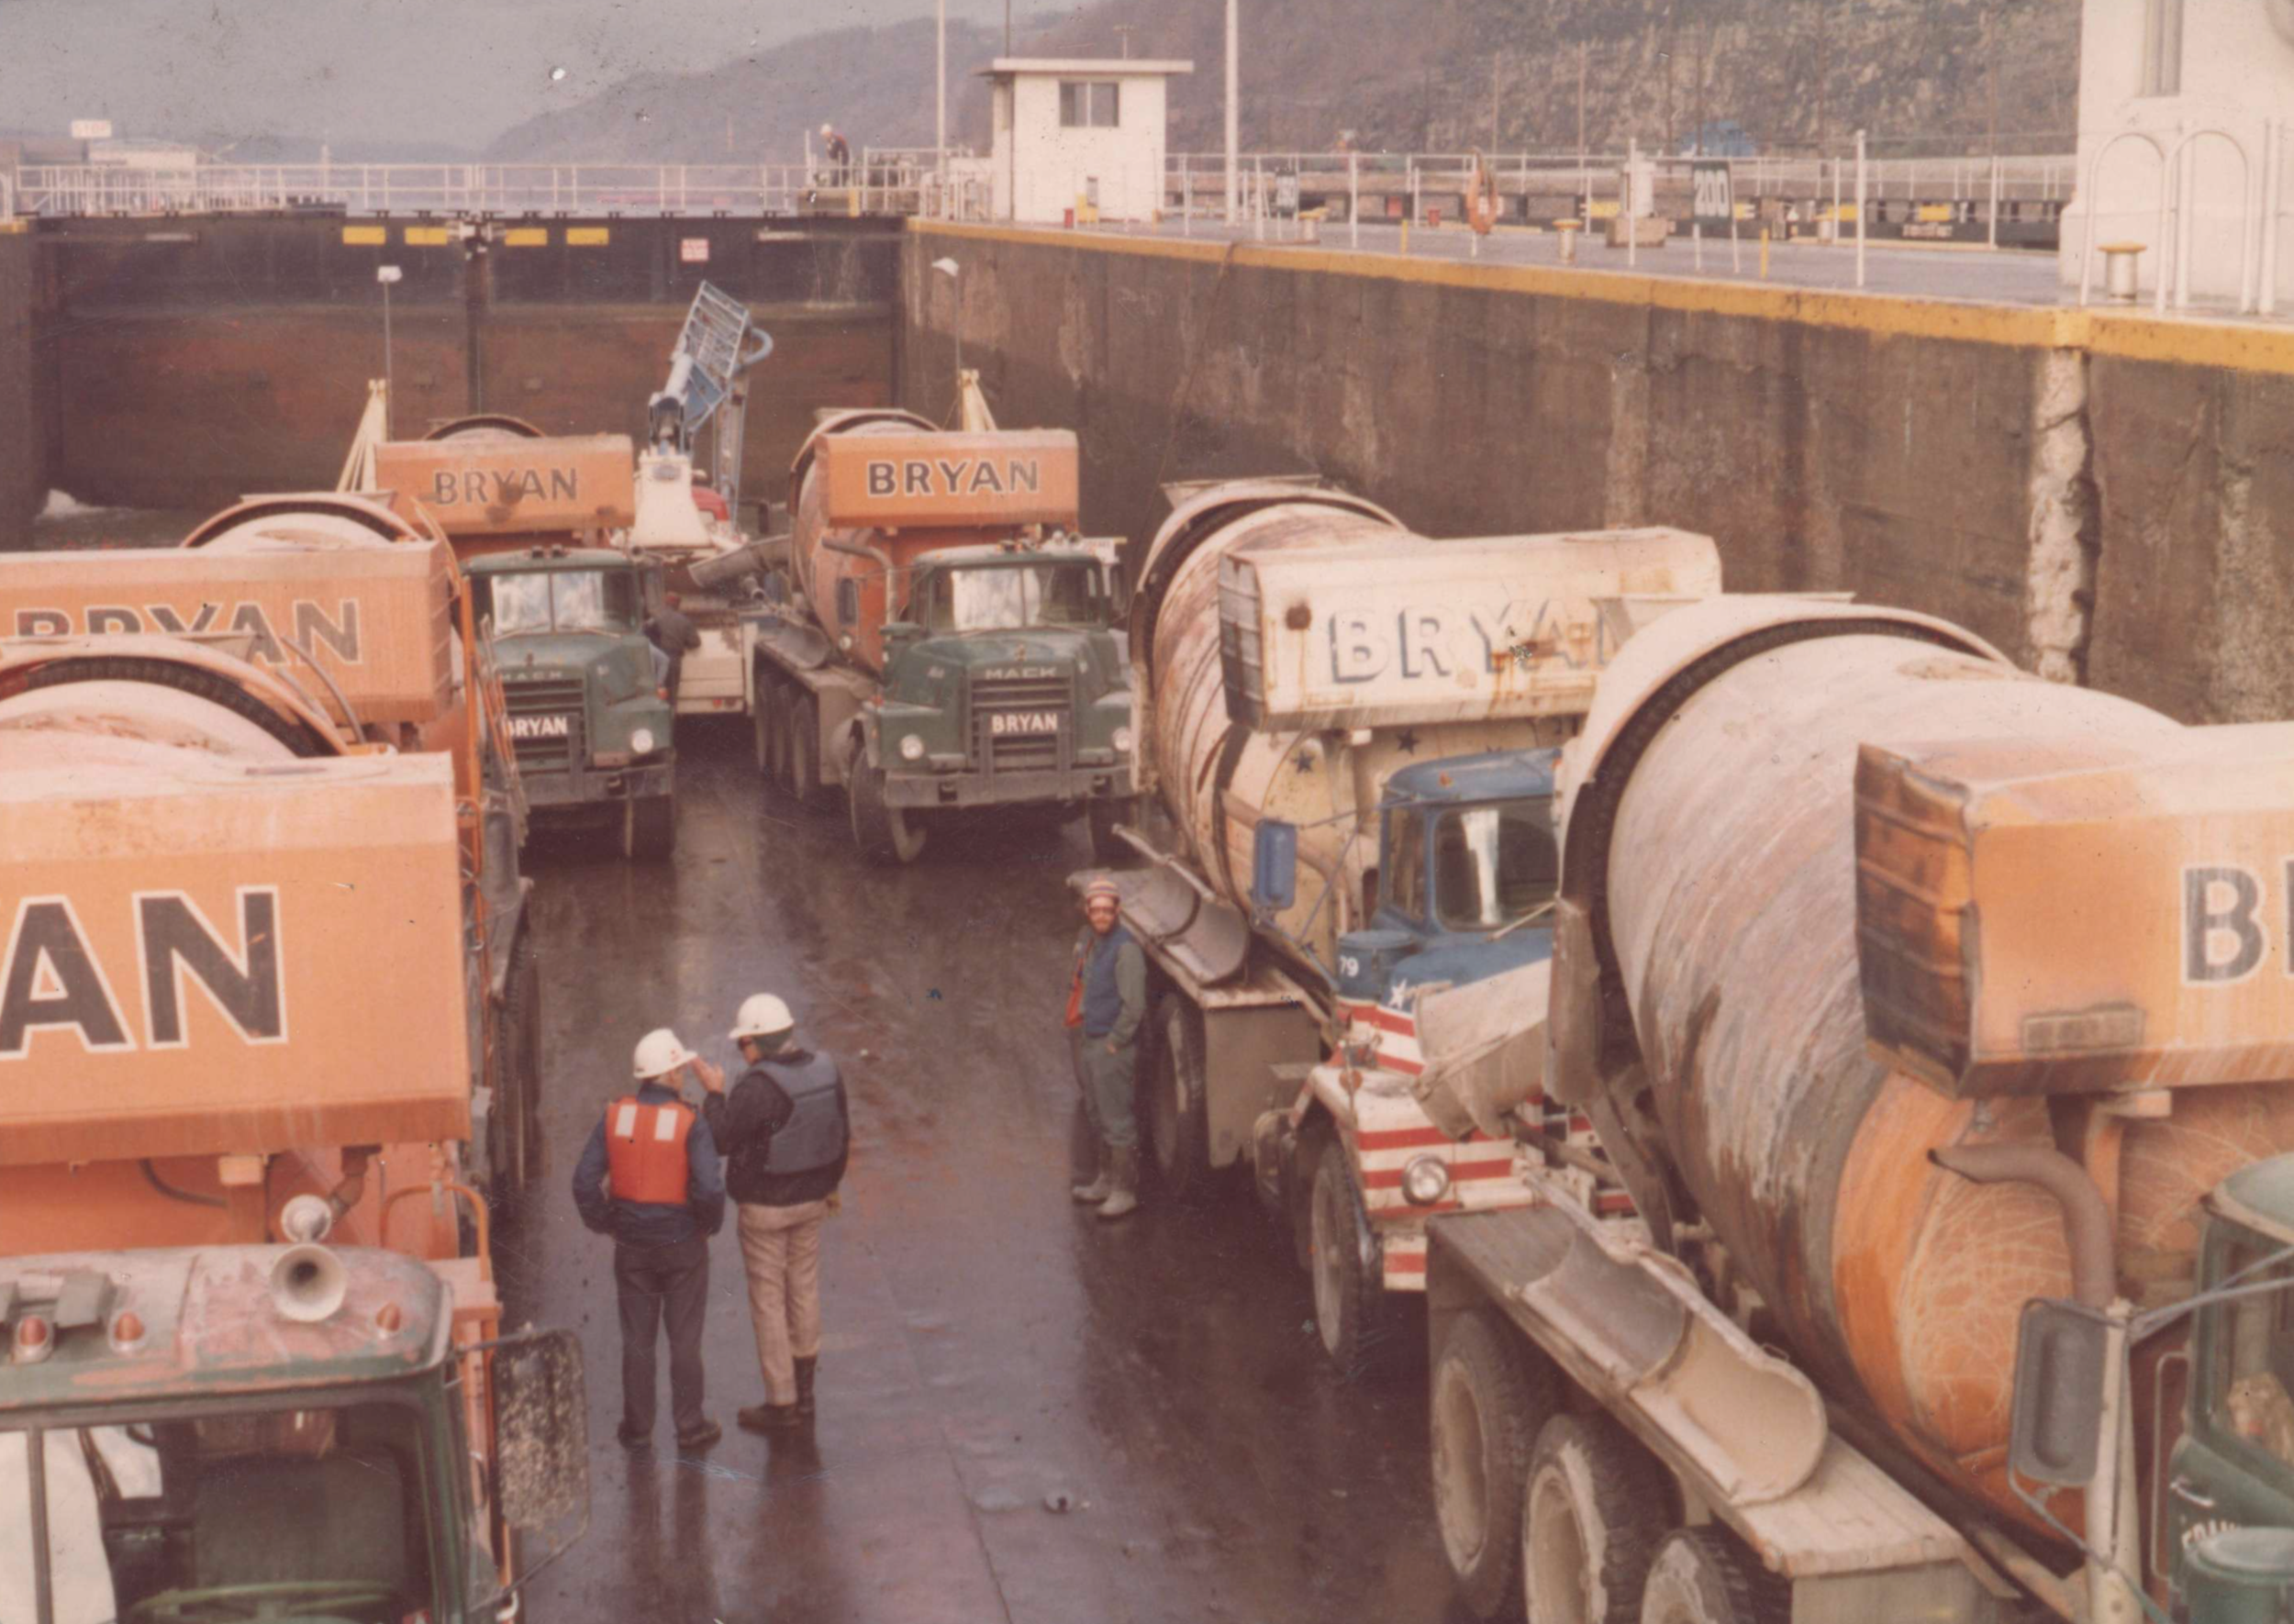 Concrete mixers on ferry boat - early 1980s